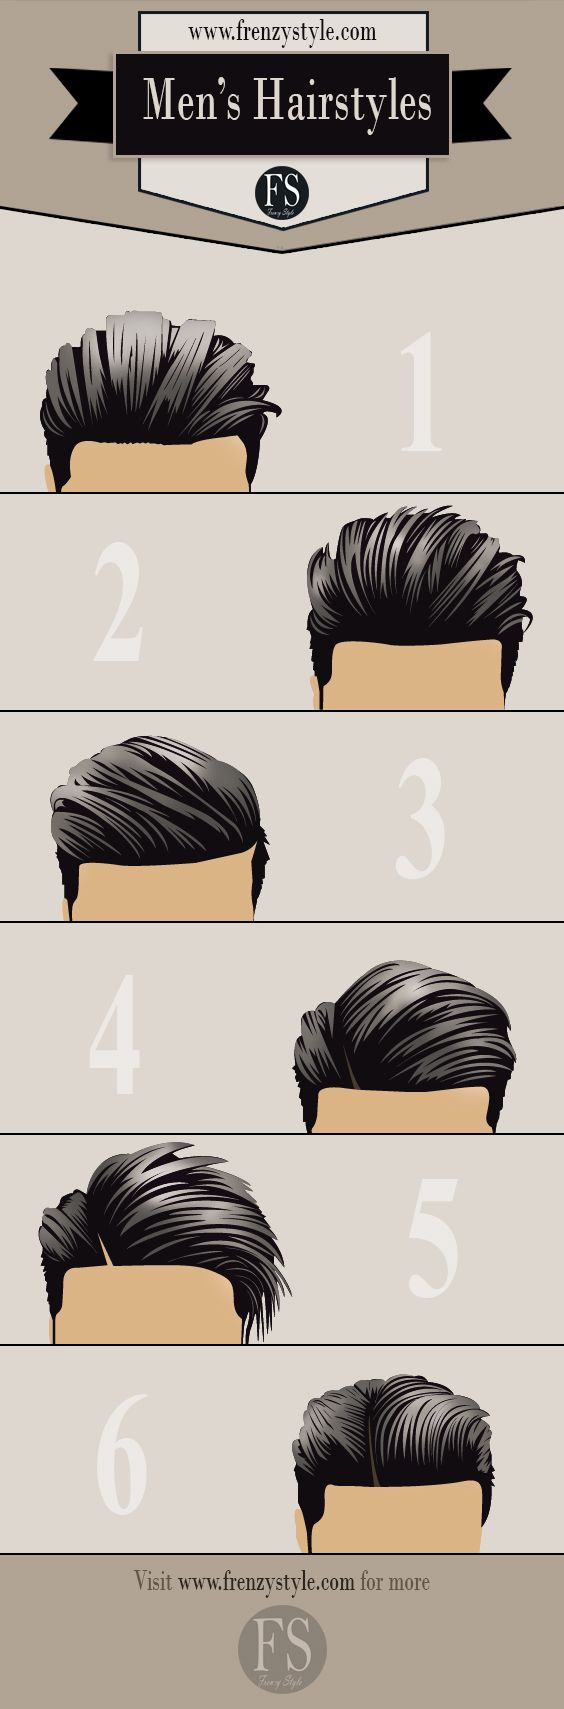 3 Popular Mens Hairstyles and Haircuts from pinterest